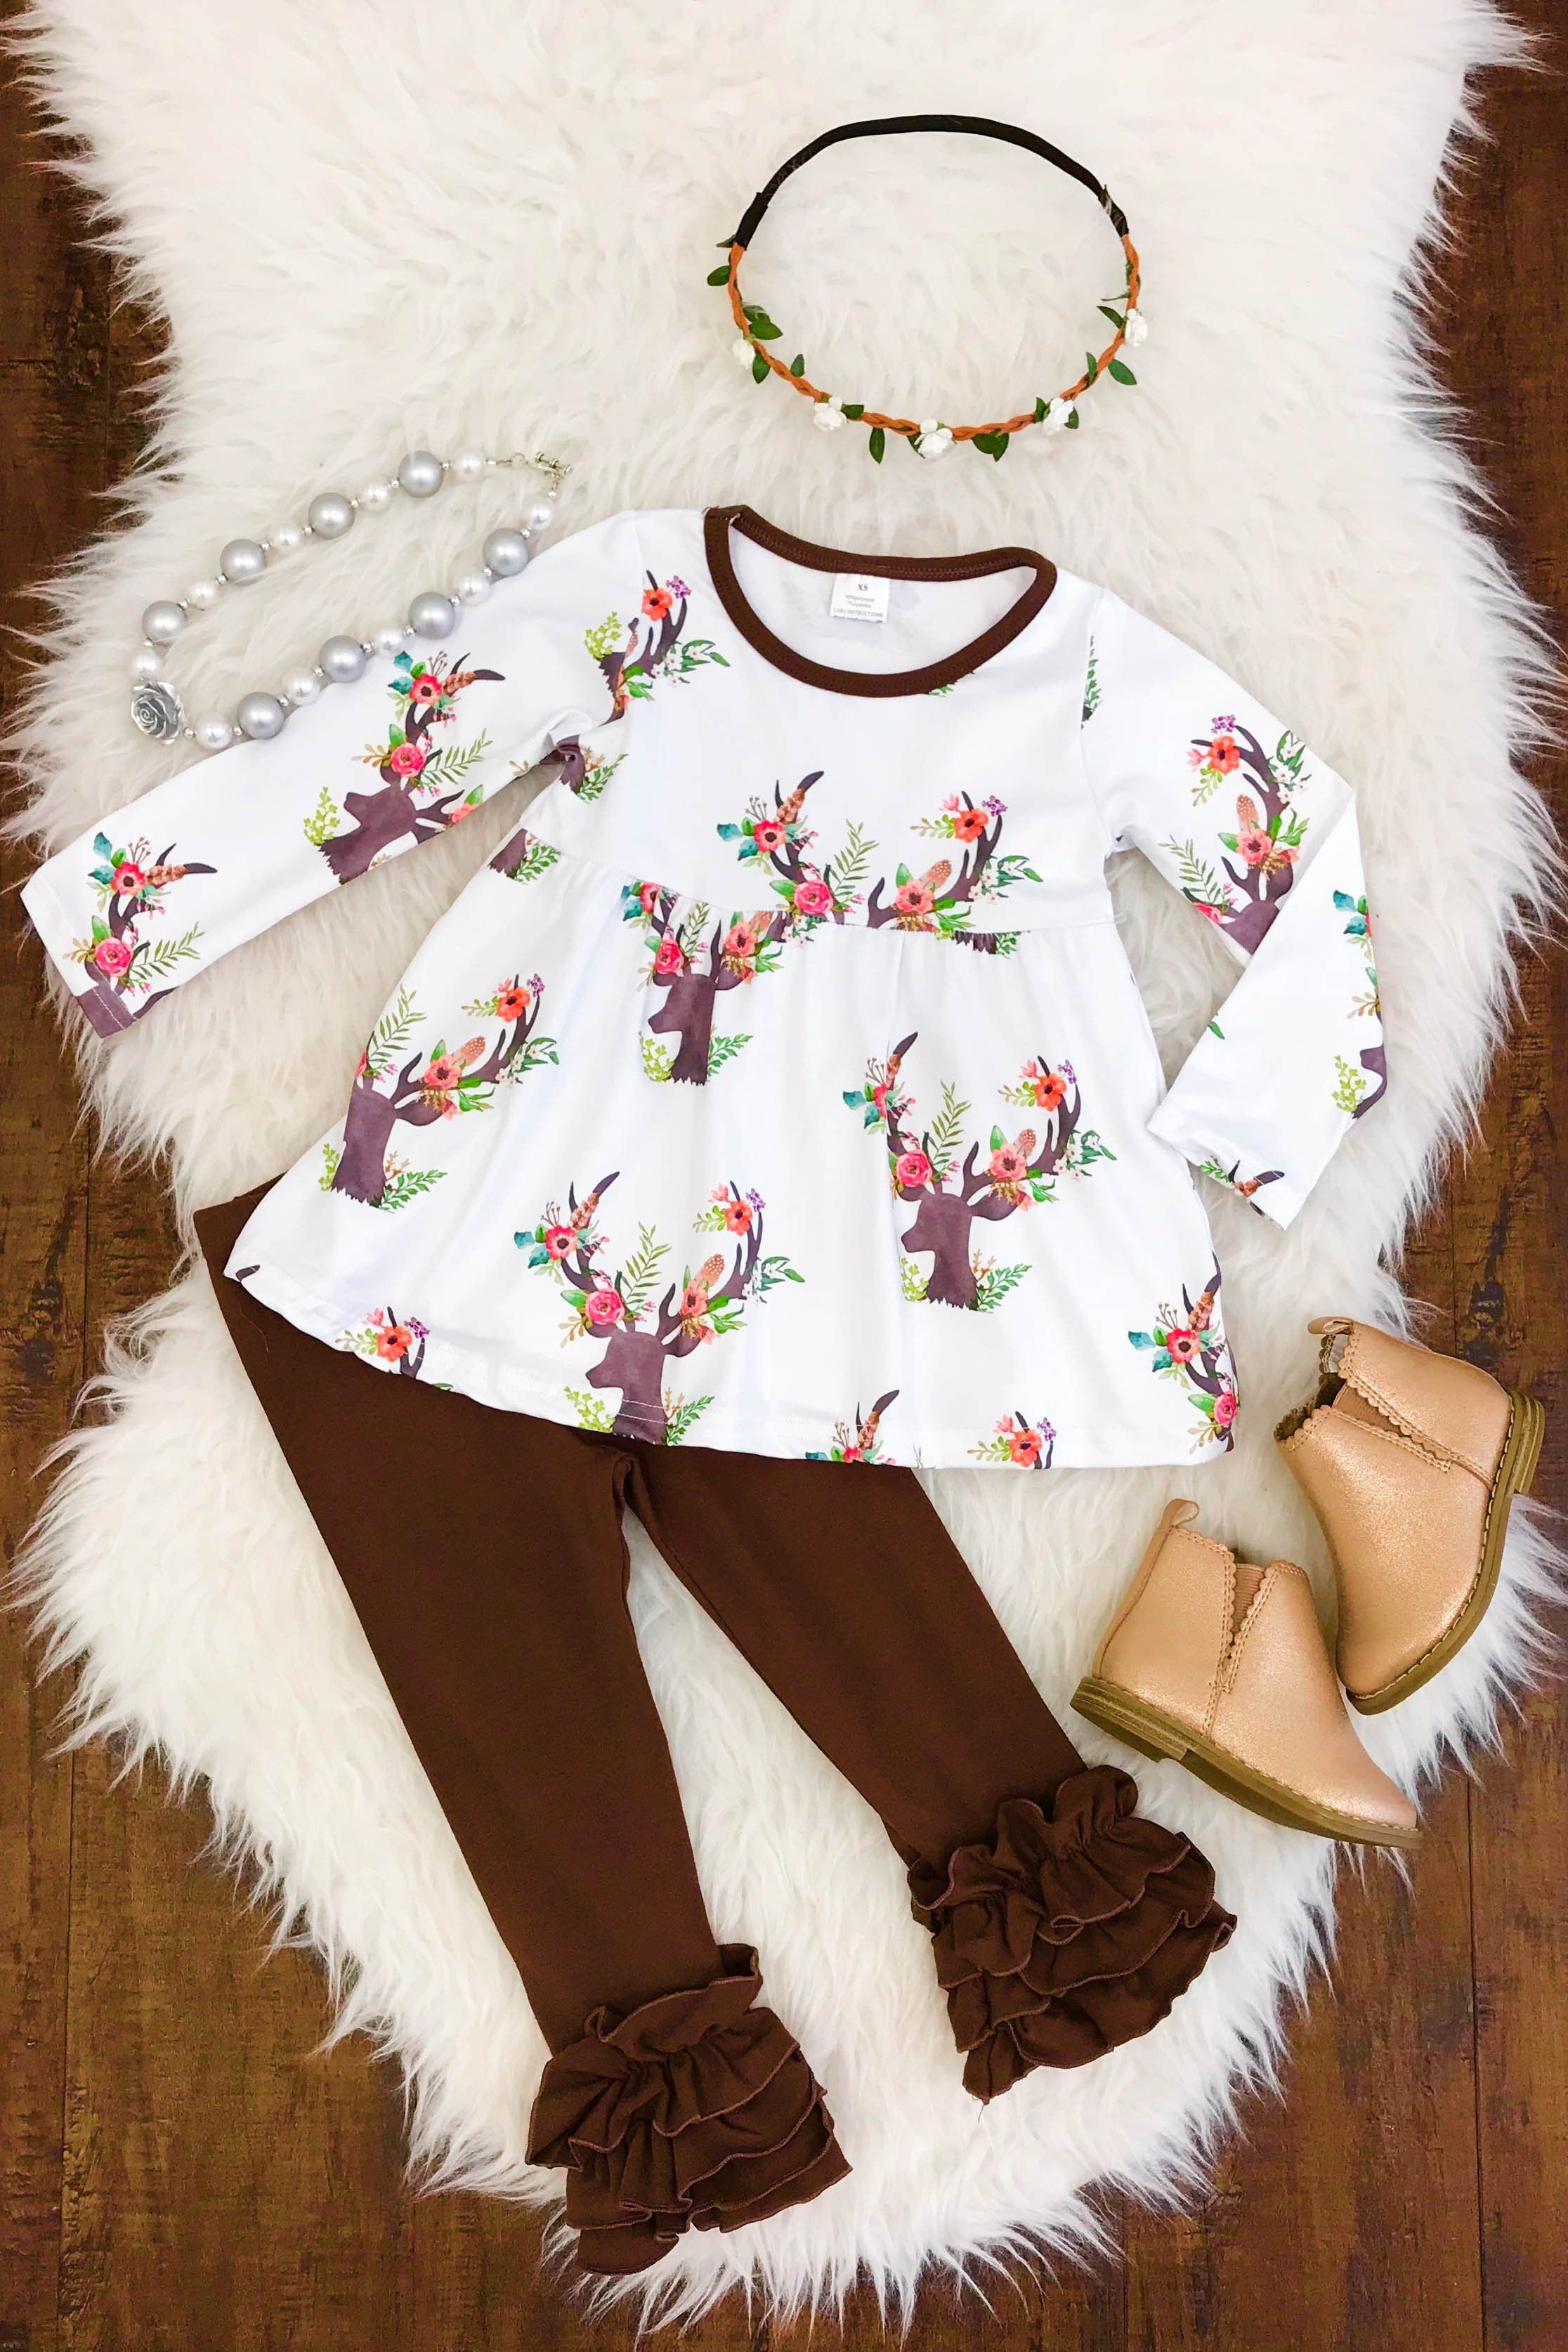 2d16709b515a2 Winter White with Deer Ruffled Pant Set. Winter White with Deer Ruffled  Pant Set White Tunic Tops, Cute Baby Girl Outfits,